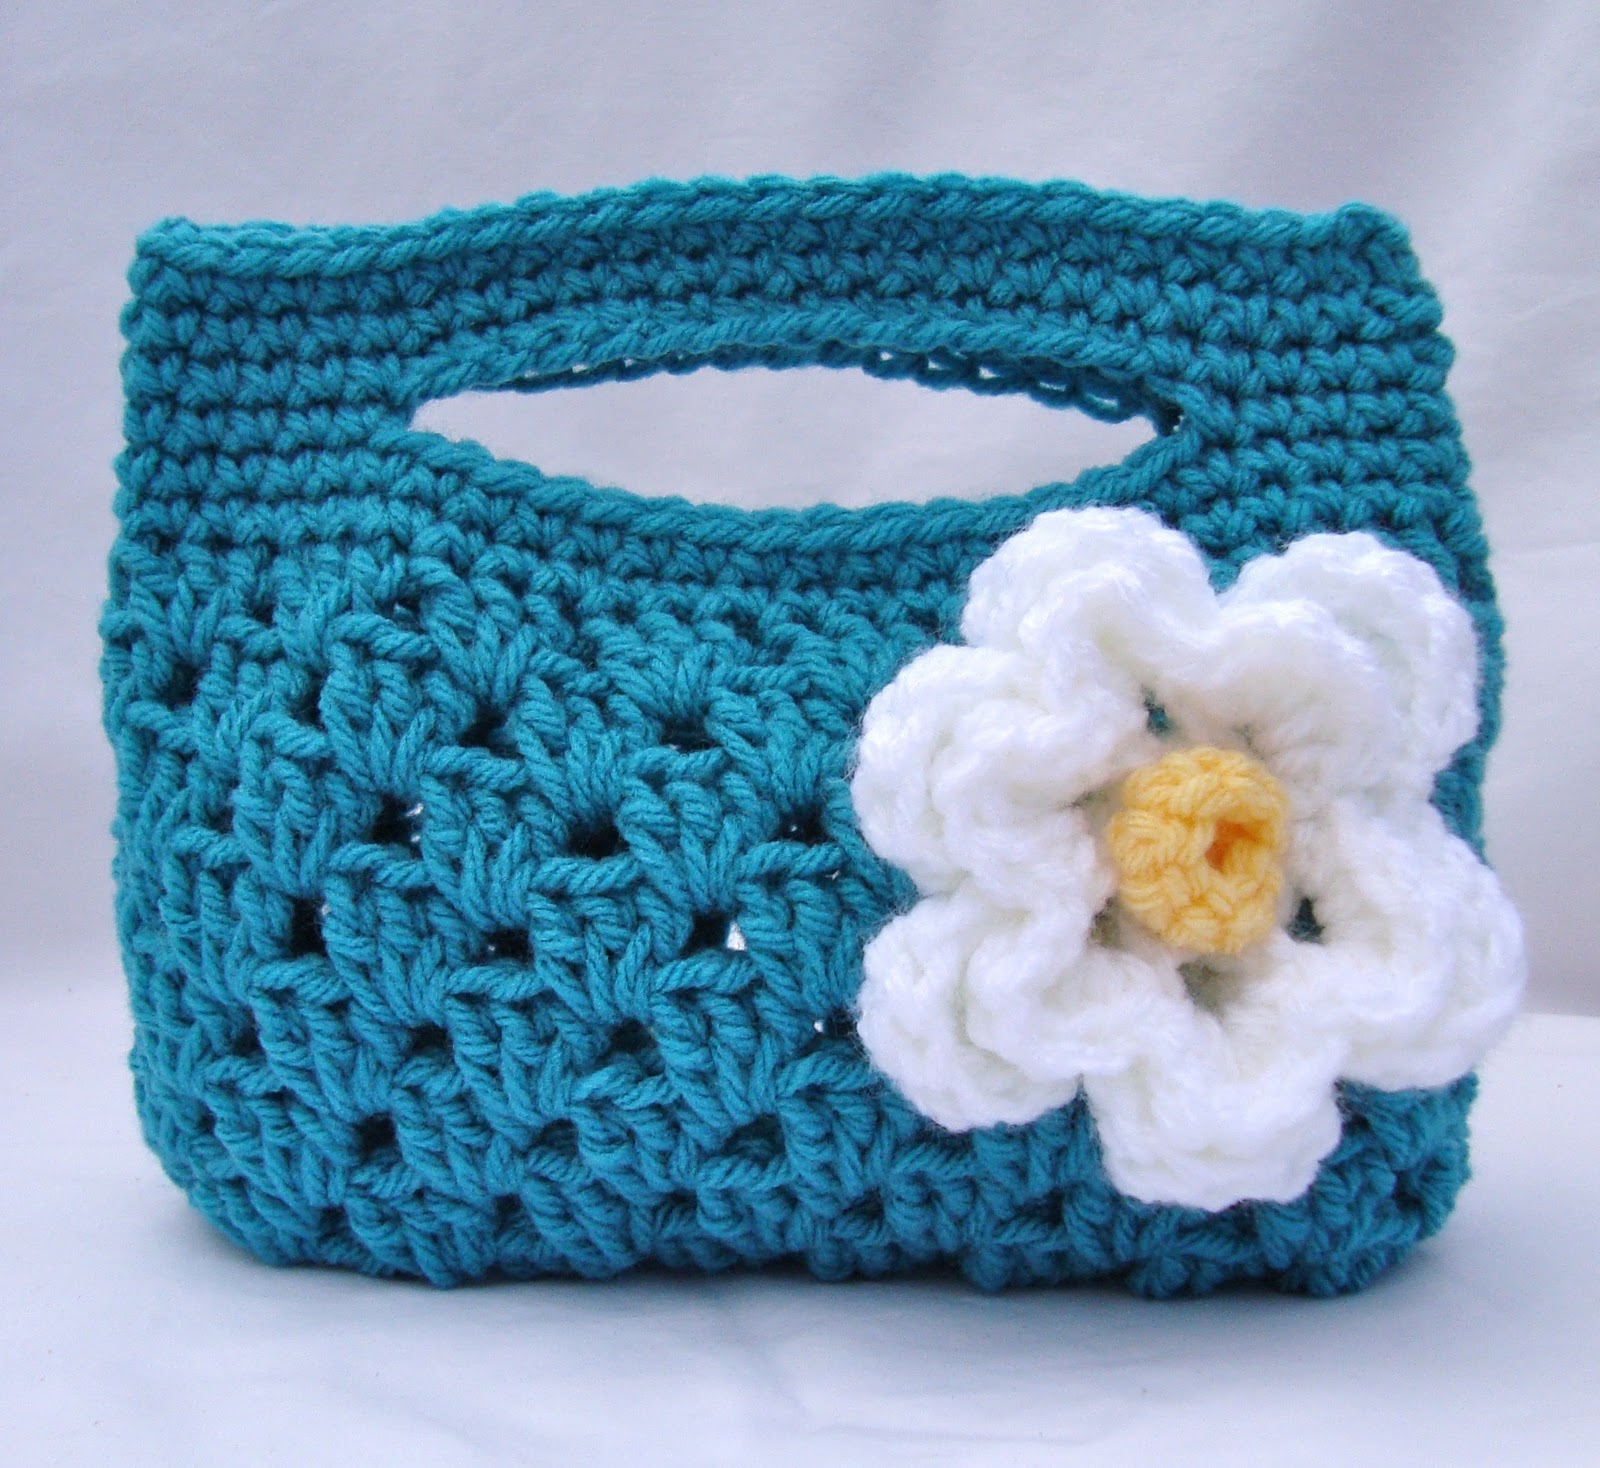 Crochet Patterns For Purses : Free Printable Crochet Purse Patterns LZK Gallery